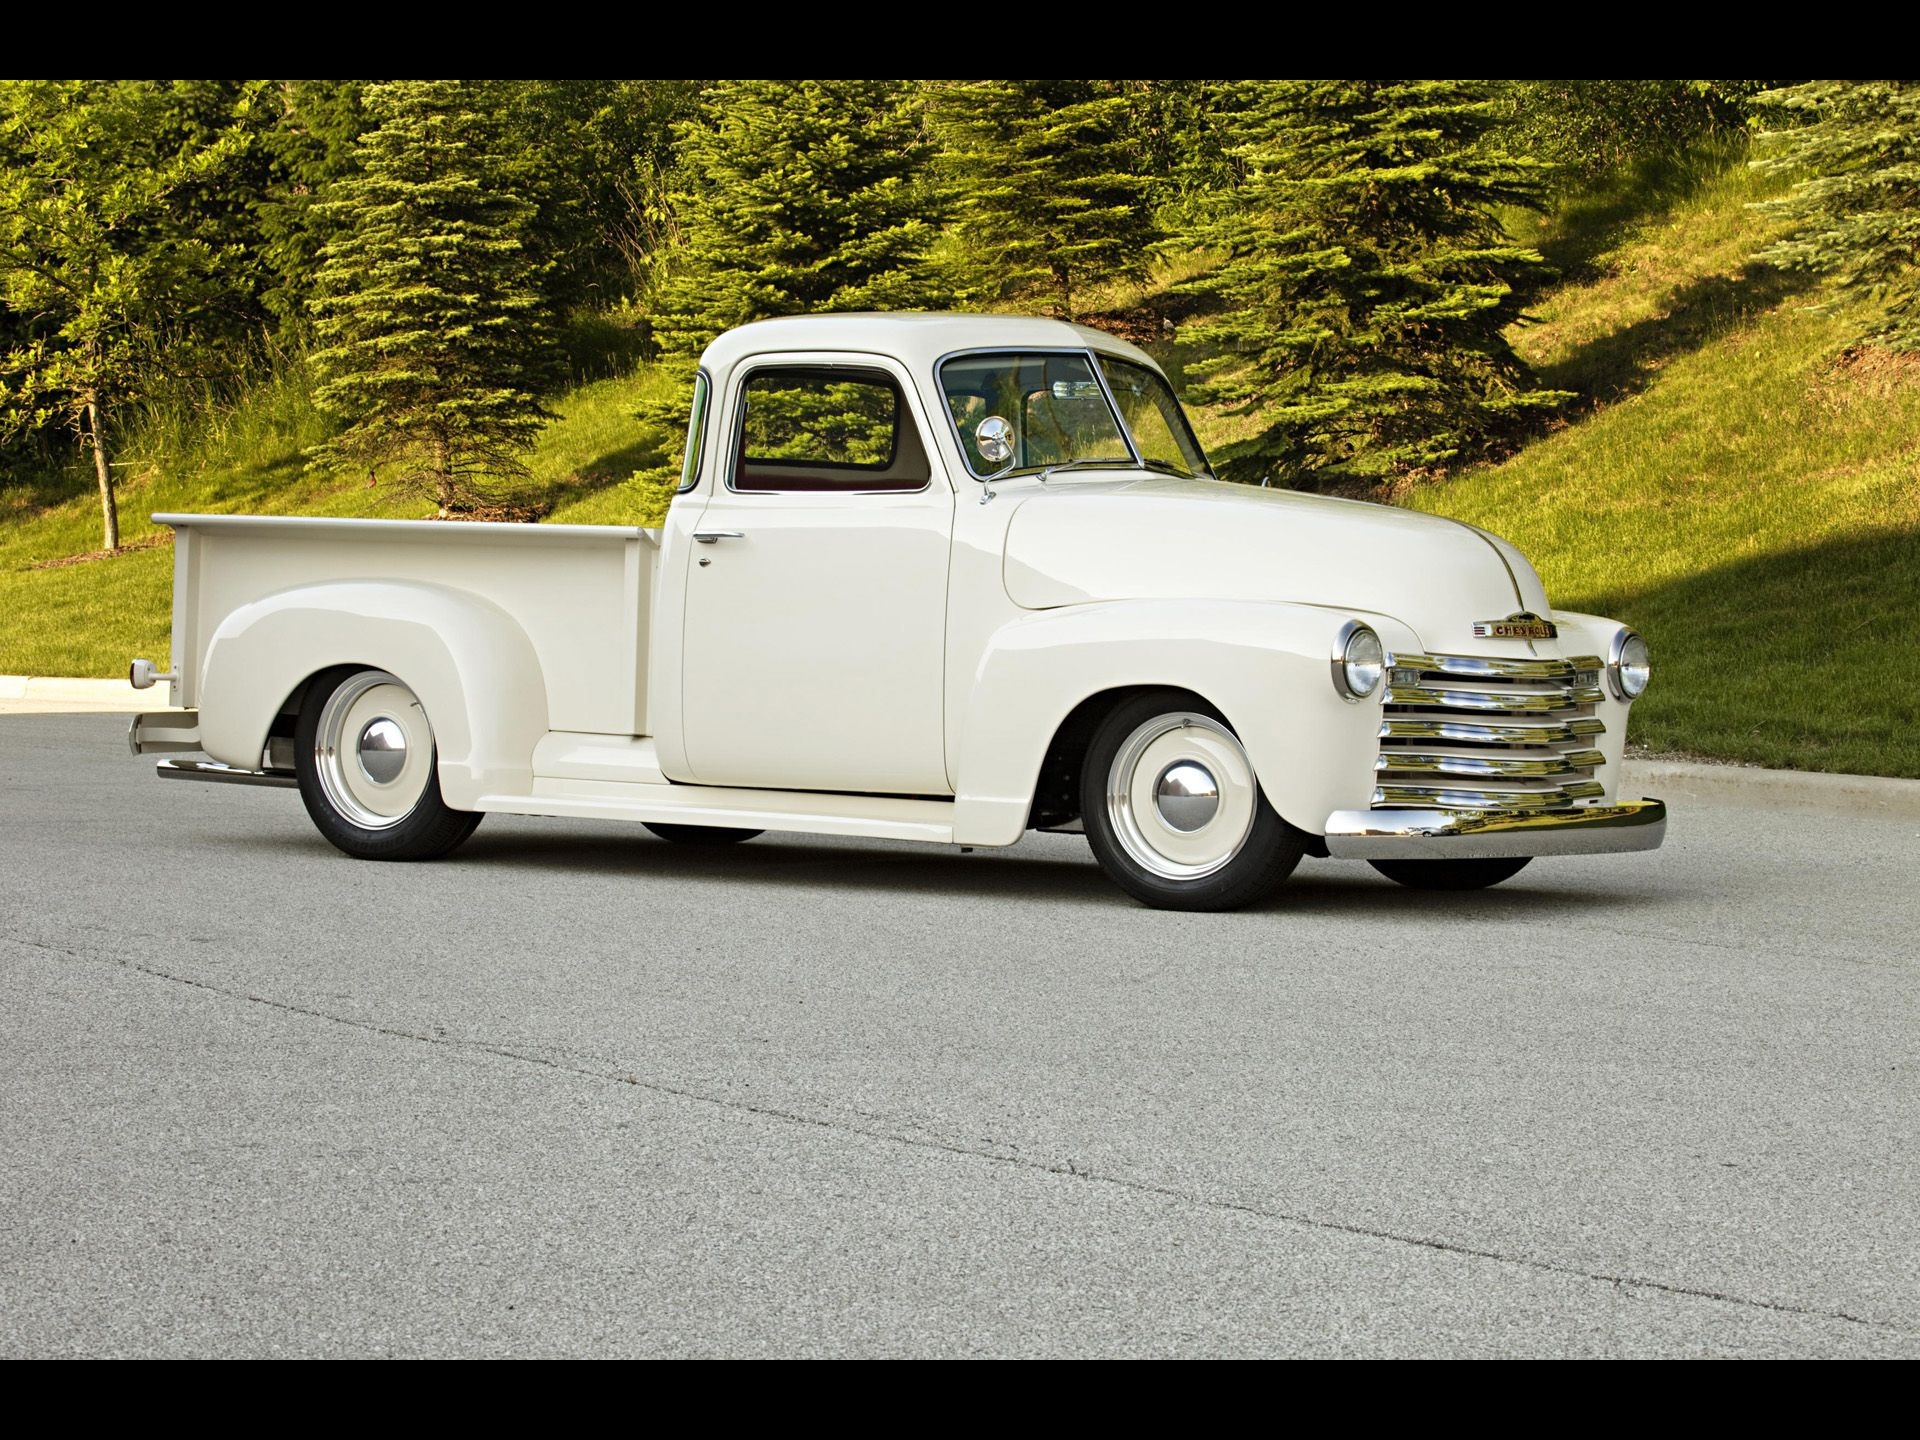 1949 Chevrolet Pickup By Roadster Shop Front And Side 1920x1440 Wallpaper Chevrolet Pickup Roadster Shop Vintage Pickup Trucks